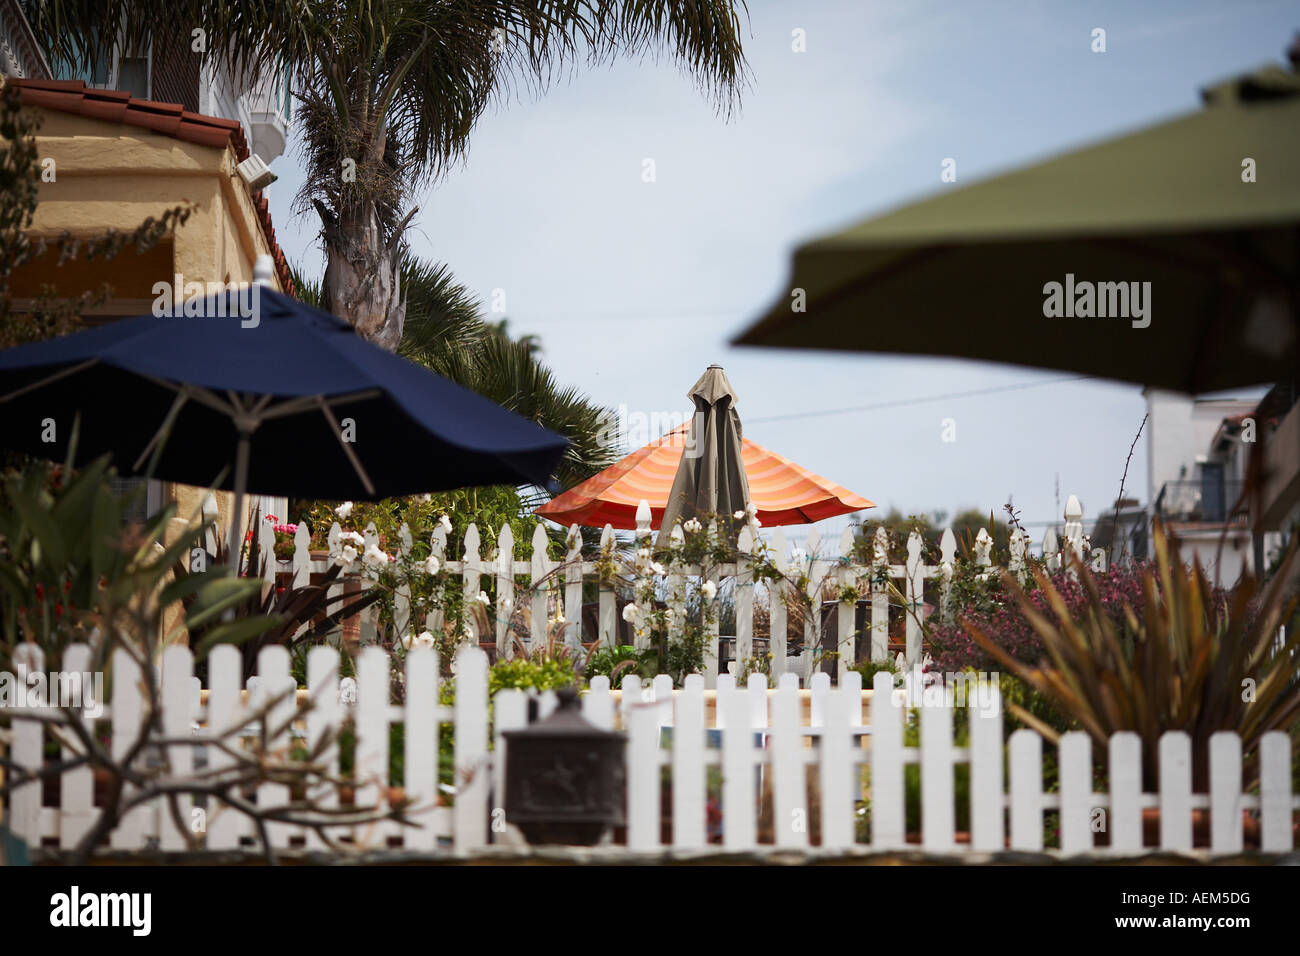 Beach Style Patios In Manhattan Beach, Los Angeles County, California, USA